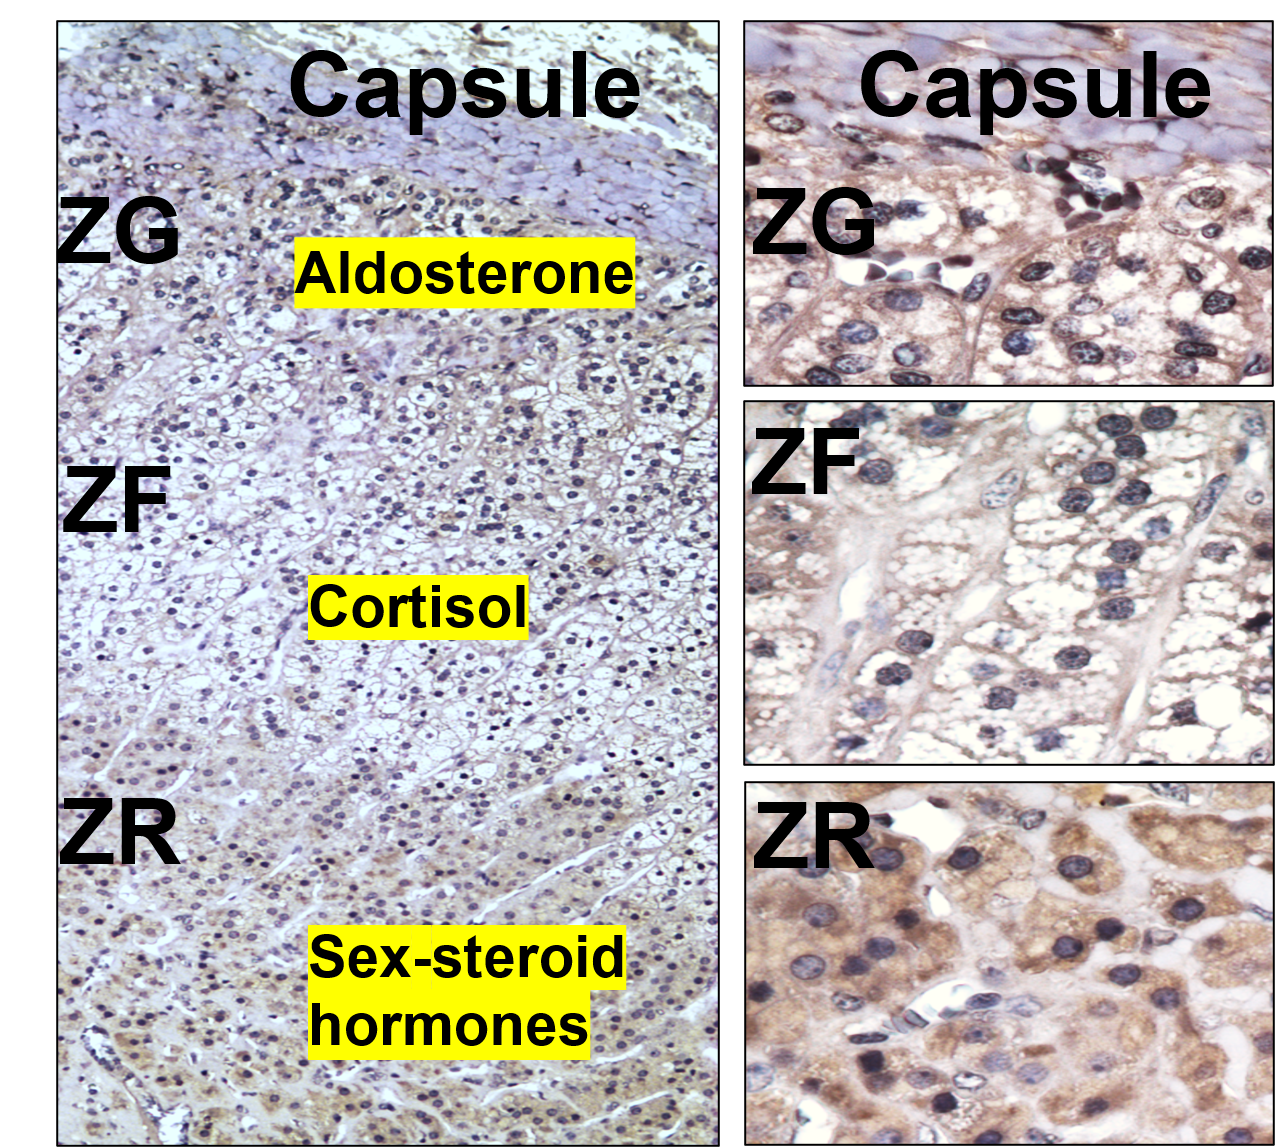 Microscopic view of the adrenal cortex: The layers of the adrenal gland cortex, zona glomerulosa (ZG), fasciculata (ZF), and reticularis (ZR), producing aldosterone, cortisol, and sex steroid hormones.